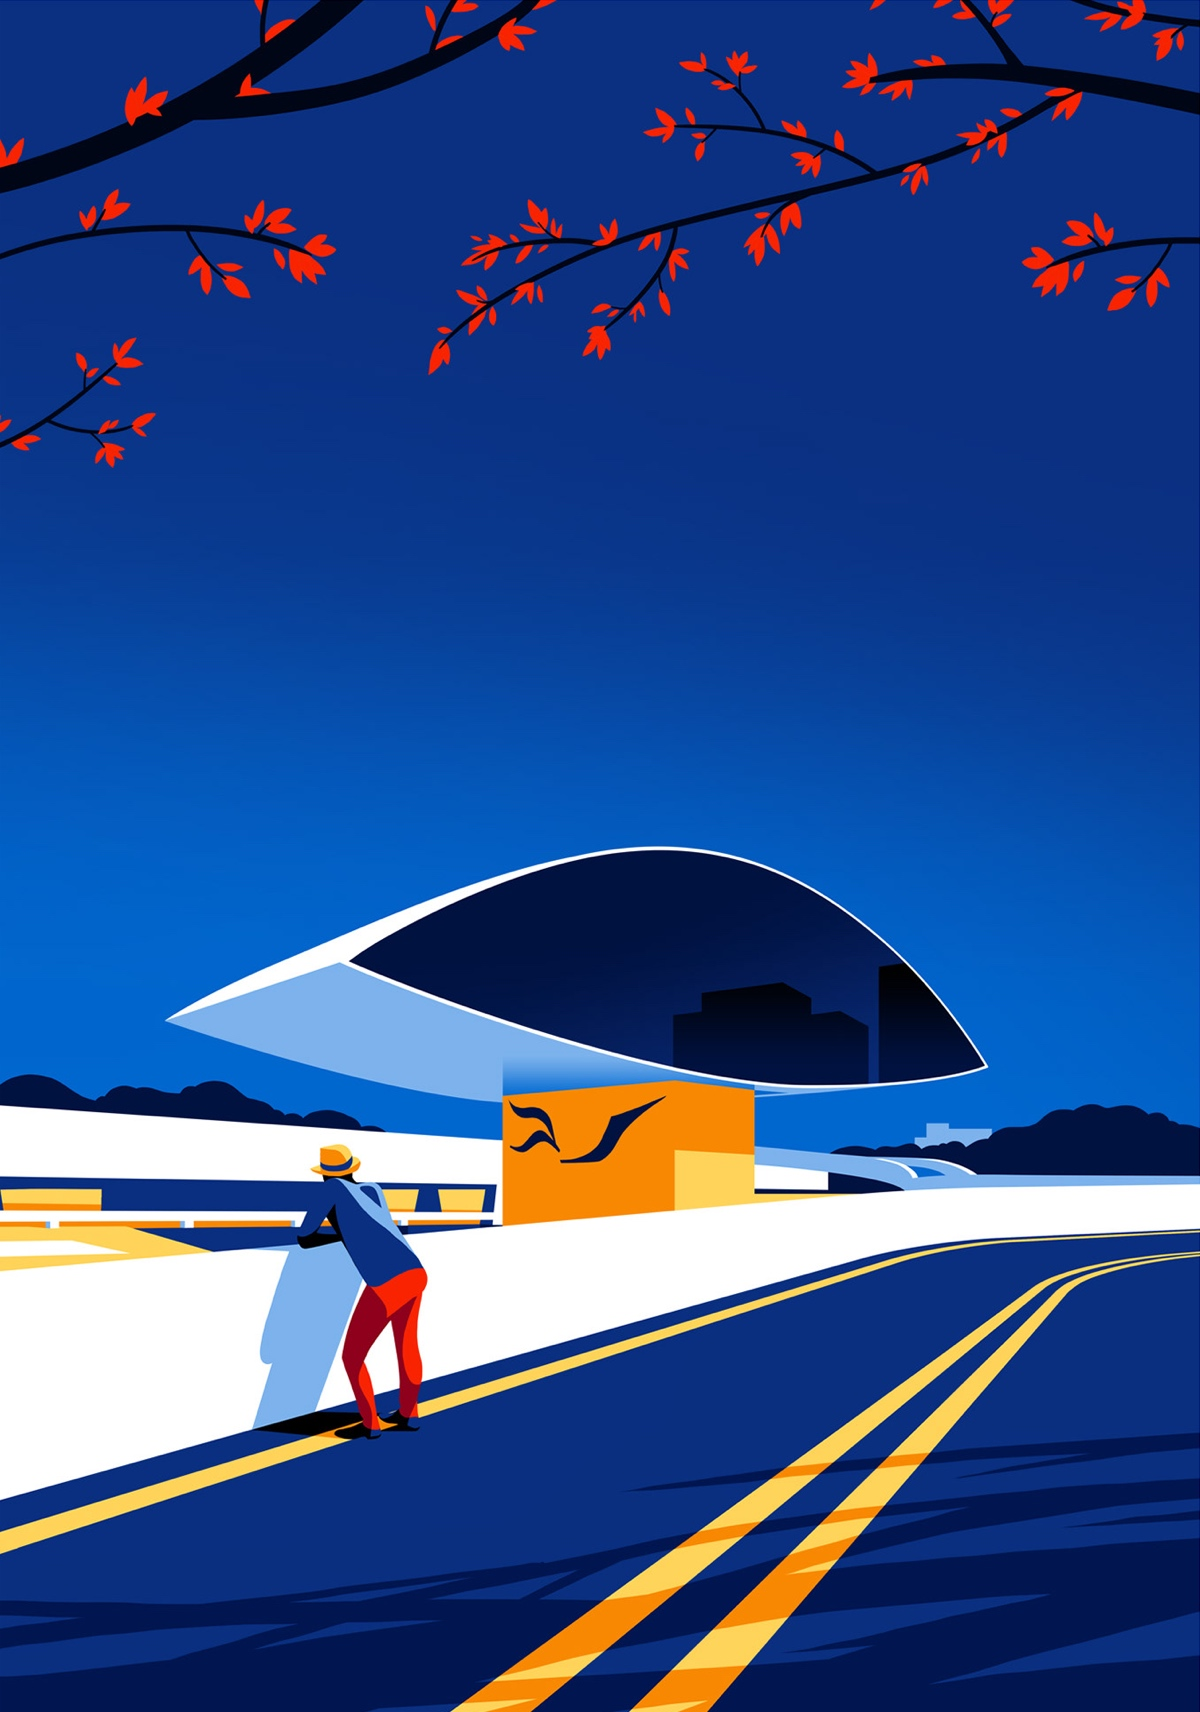 oscar-niemeyer-architecture-illustrations-levente-szabo-3